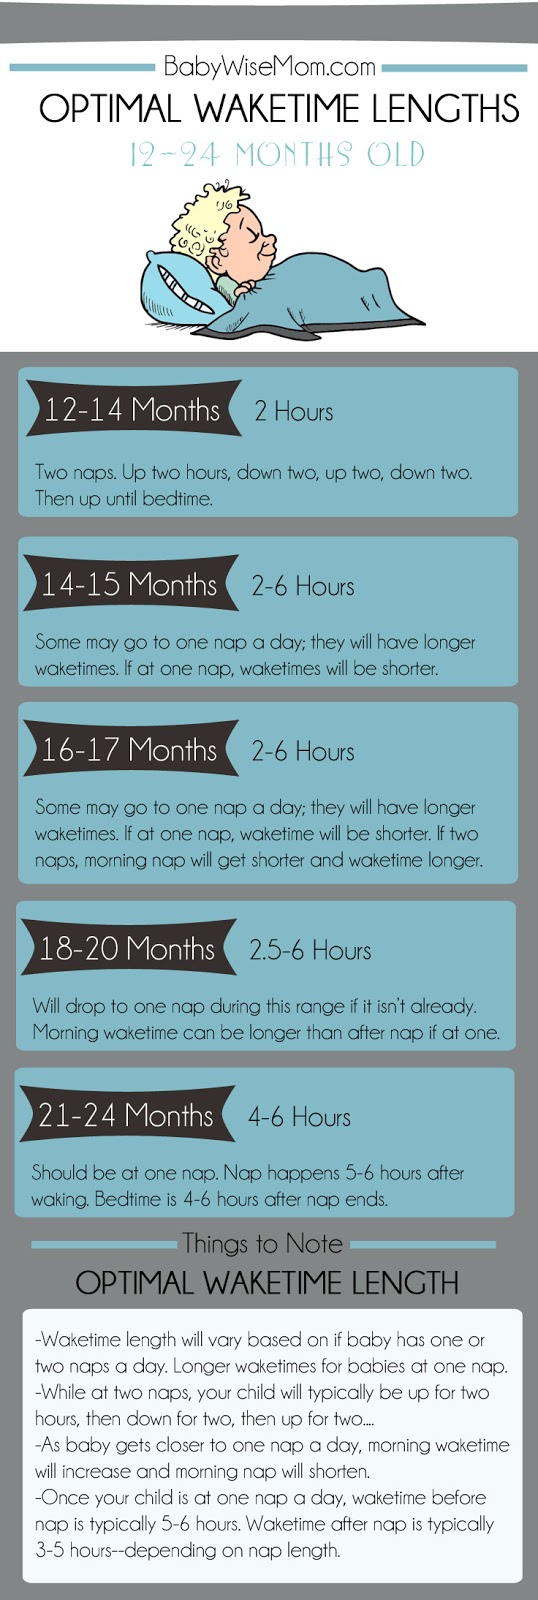 Optimal Waketime Lengths for Toddlers 12-24 Months Old